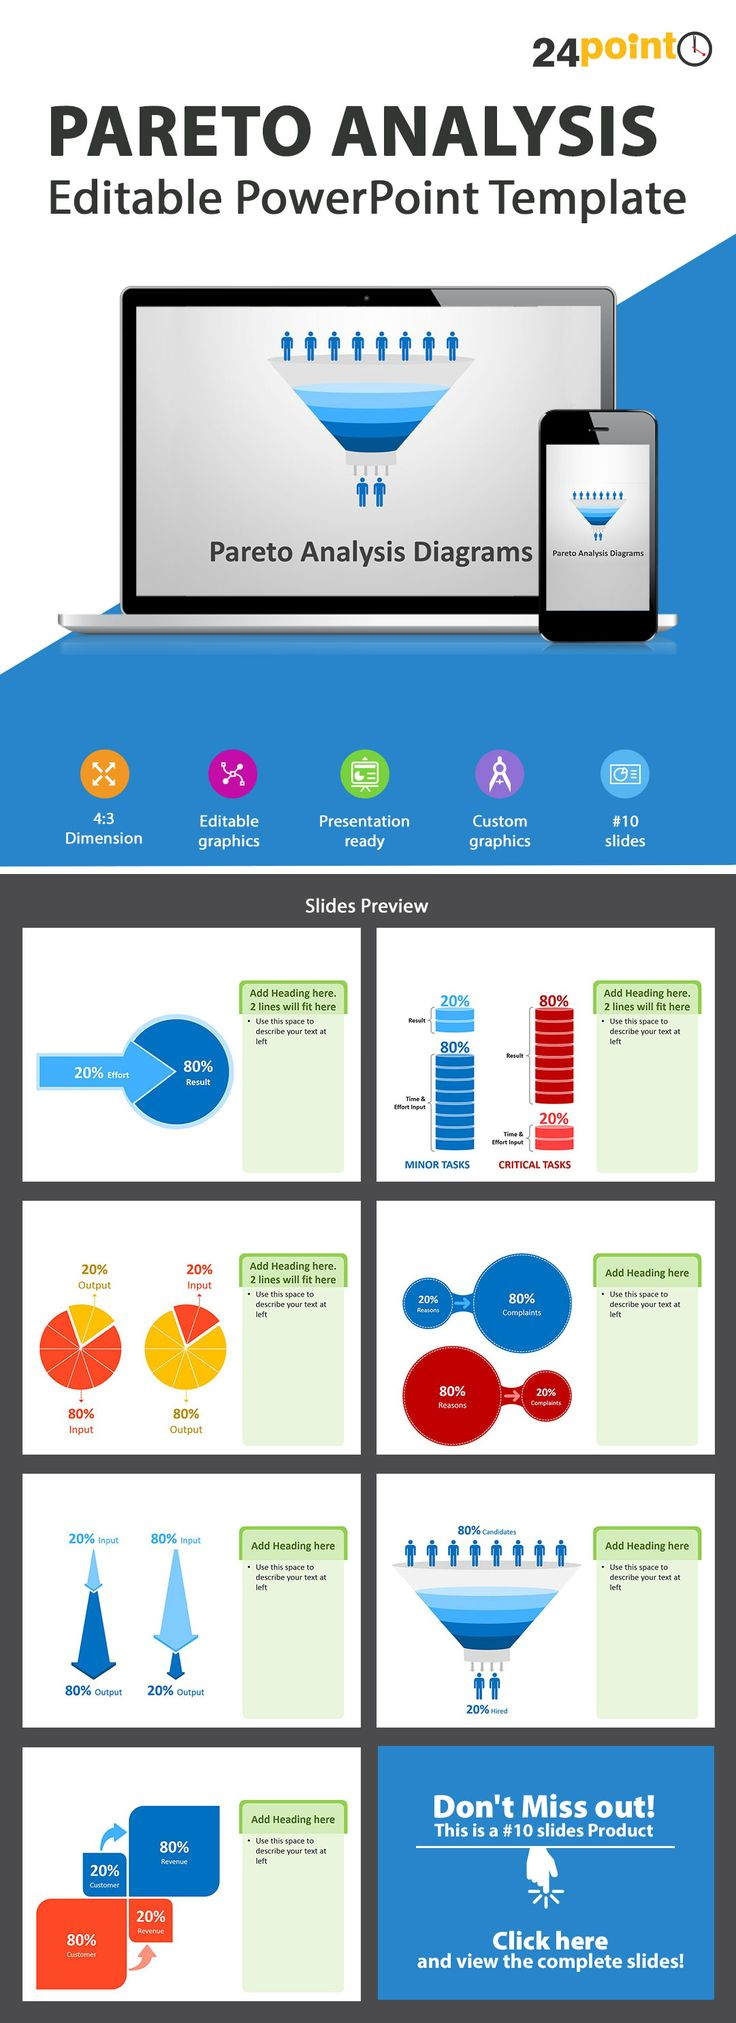 Pareto Analysis PowerPoint Template - This template contains ten professionally designed ready-to-use diagrams based on the Pareto principle, also known as the '80/20 rule'. Visit our store today.